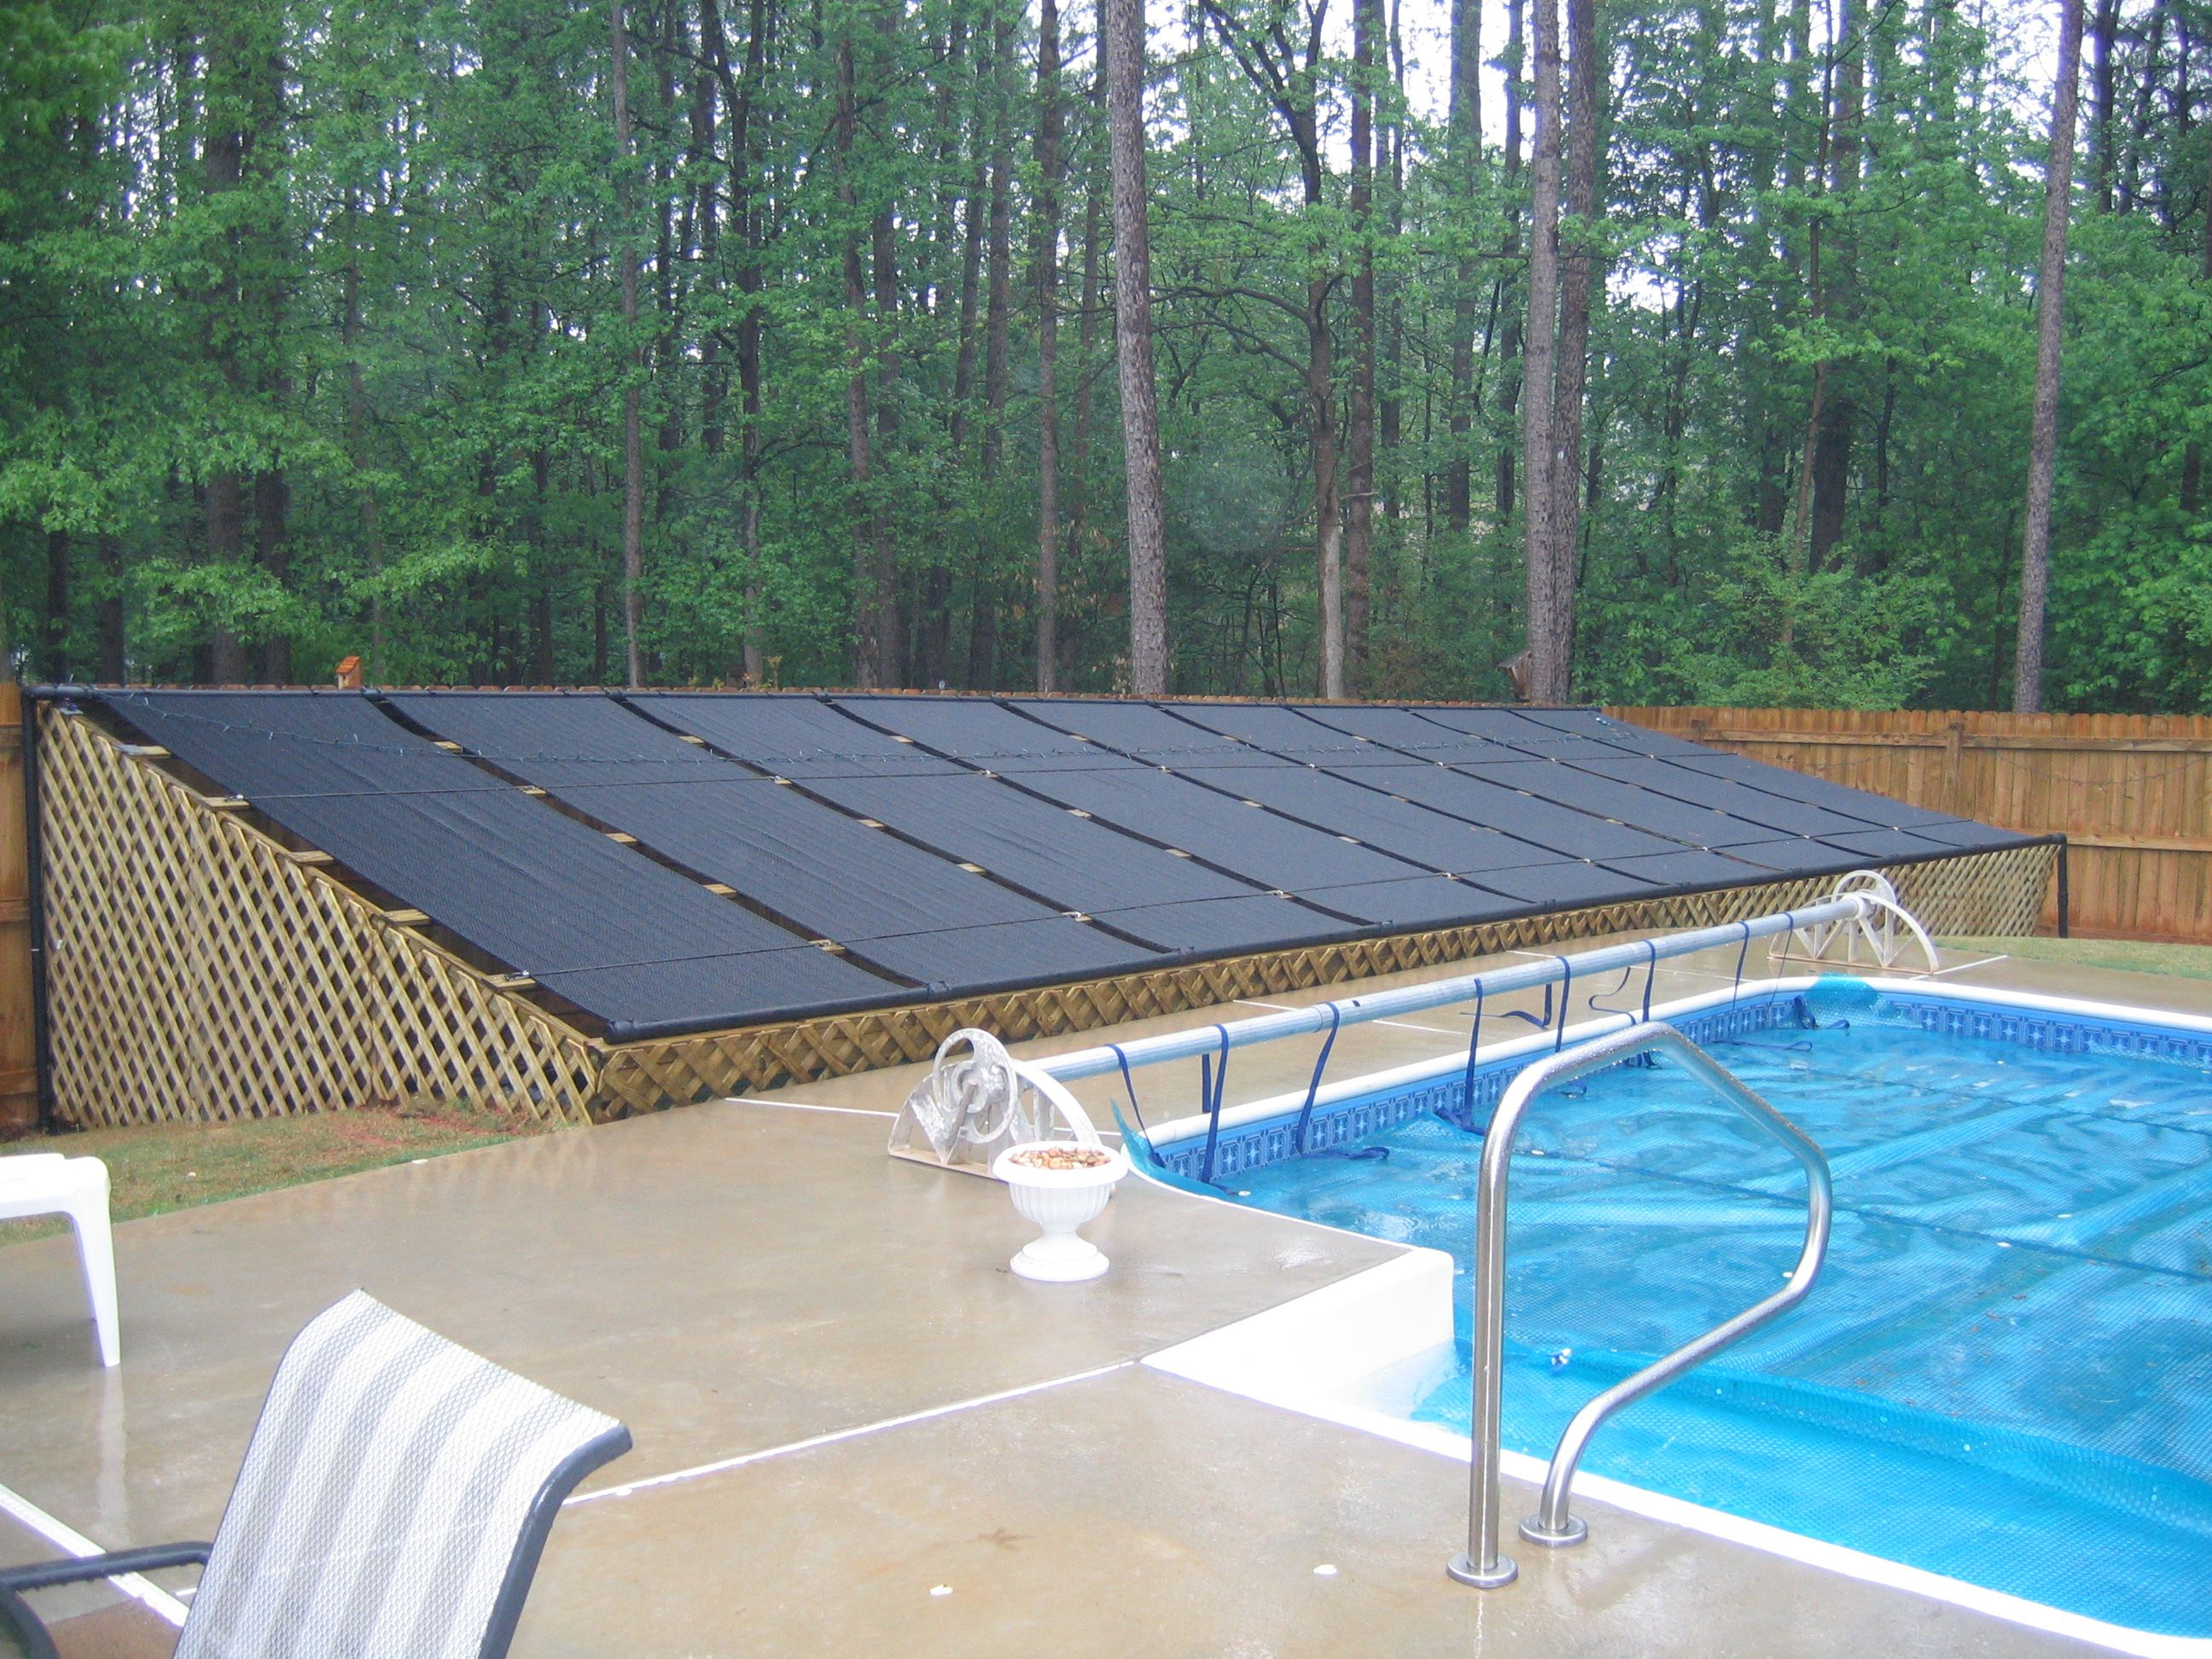 Build Your Own Solar Pool Heater for Under $100 | Pool Heaters in ...